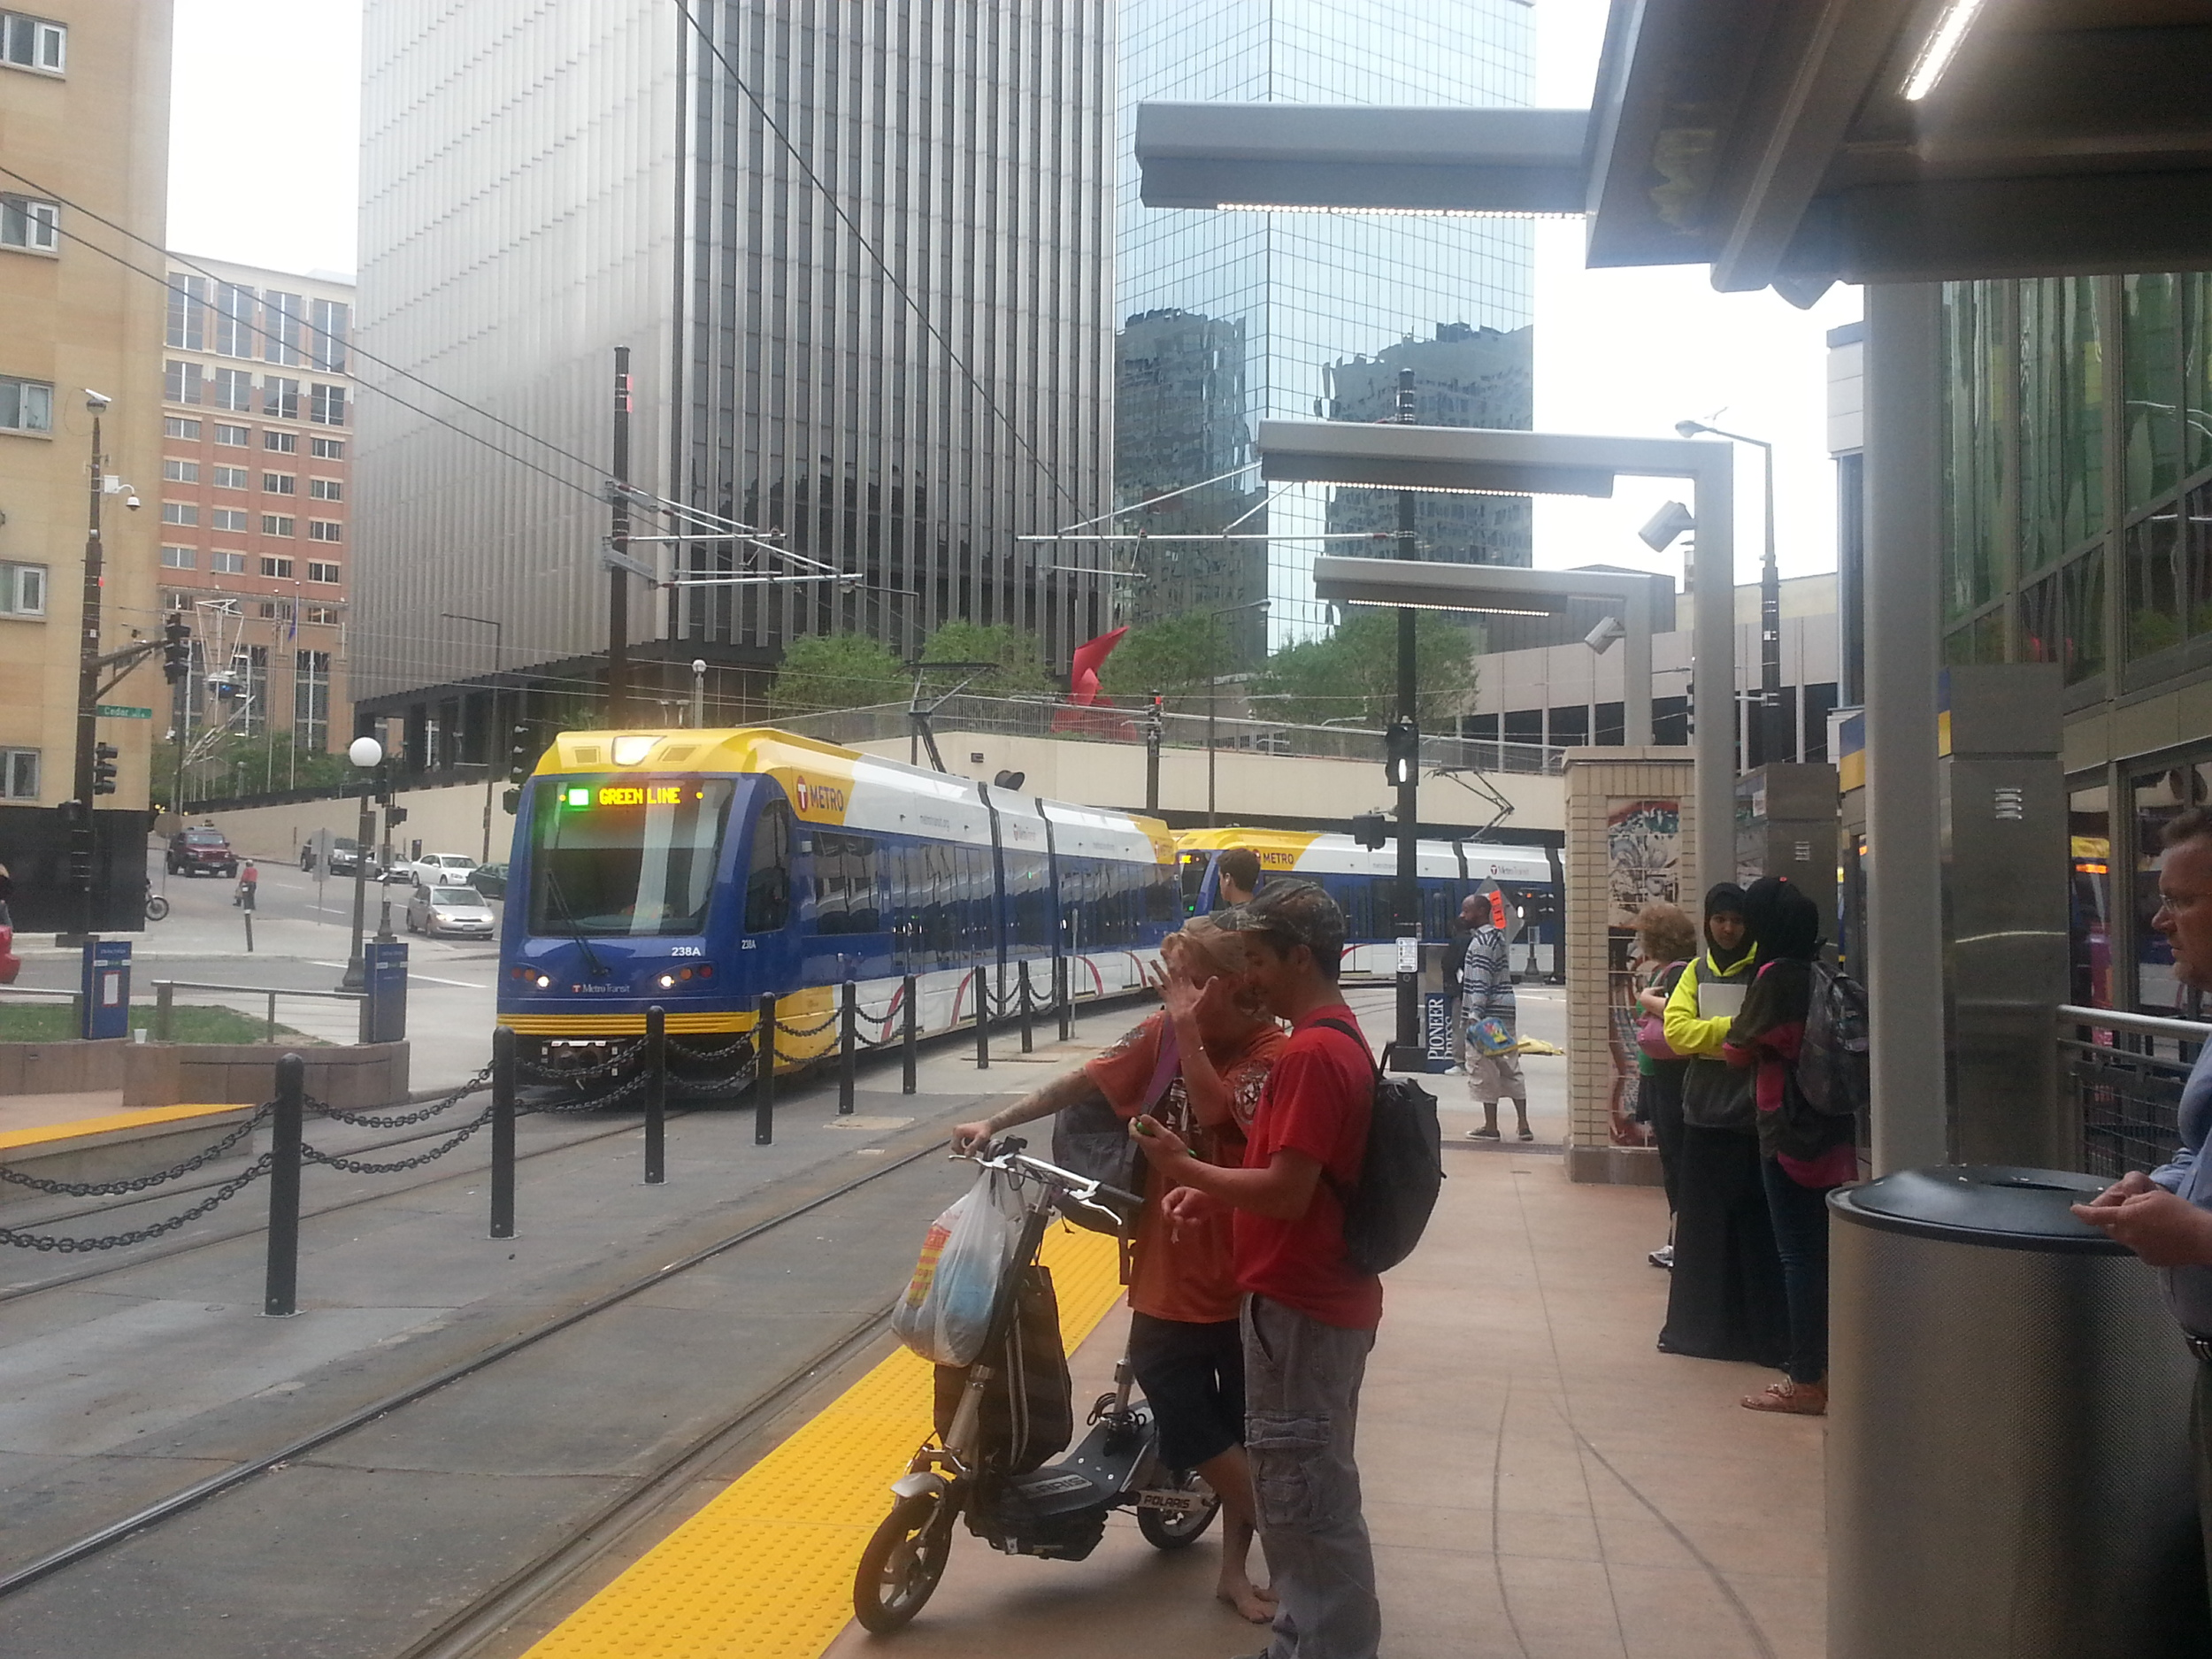 """The new Green Line LRT and the community building around the line are among the highlights of the Rail~Volution conference in Minneapolis and Saint Paul, MN.   Headed to the Twin Cities? Check out these resources by MZ Strategies, LLC:    -     The Infill TOD Circus     ( Tuesday, Sept 23 at Rail~Volution)  -- Mariia Zimmerman, MZ Strategies moderates panel featuring projects and insights by developers working on some of the most challenging TOD infill projects in Minneapolis, Dallas and Sacramento     -     Advancing TOD through Transit Corridor Planning    - a compendium of best practices in corridor planning from the Twin Cities region looking back over the past 10 years from the Hiawatha Light Rail to Northstar Commuter Rail, Central Corridor LRT and future light rail and bus rapid transit corridors throughout the region. (prepared for the Metro Transit TOD Office, published May 2014)    -     """"Transforming Community""""     :    A synthesis of the multi-year Transitway Impact Research Program's findings on the actual and projected impacts of transitways on the Twin Cities region, offering lessons learned to help guide the build-out of the rest of the network most effectively, and a set of implications for policymakers. (published October 2013)"""